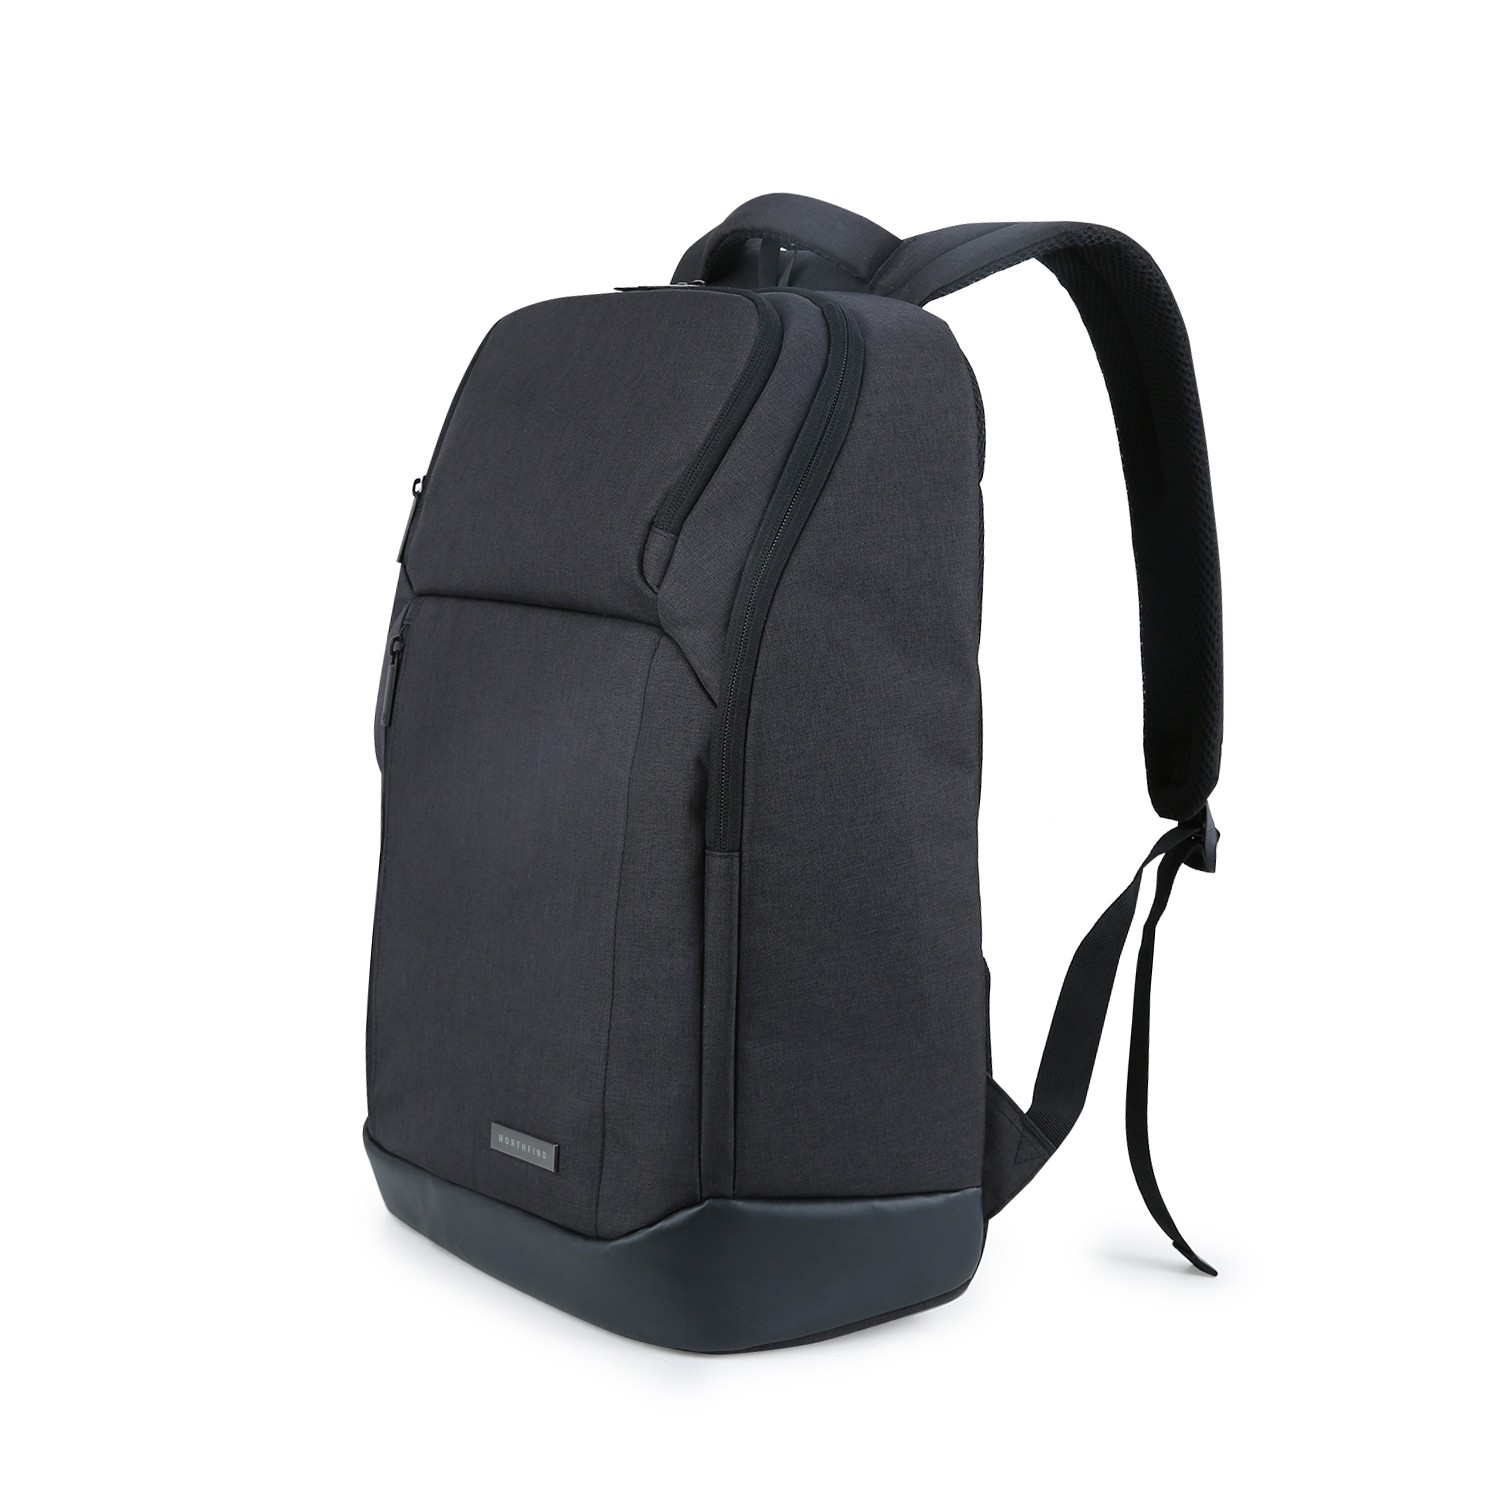 Business Laptop Backpack Manufacturers, Business Laptop Backpack Factory, Supply Business Laptop Backpack